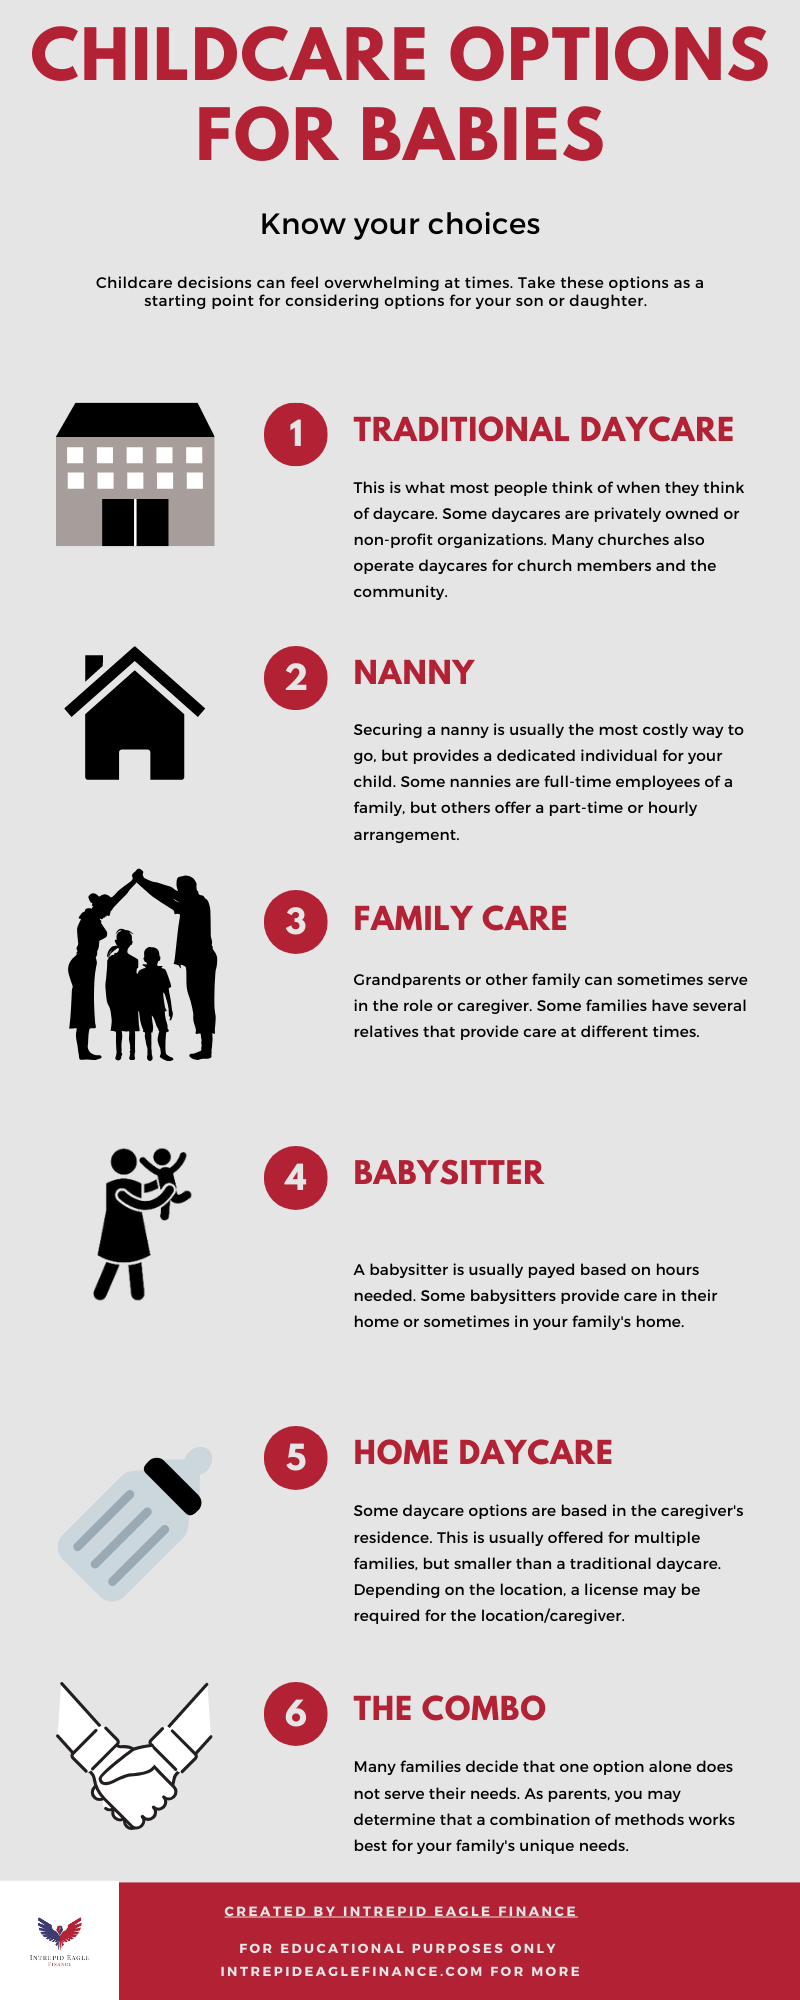 Childcare for babies infographic